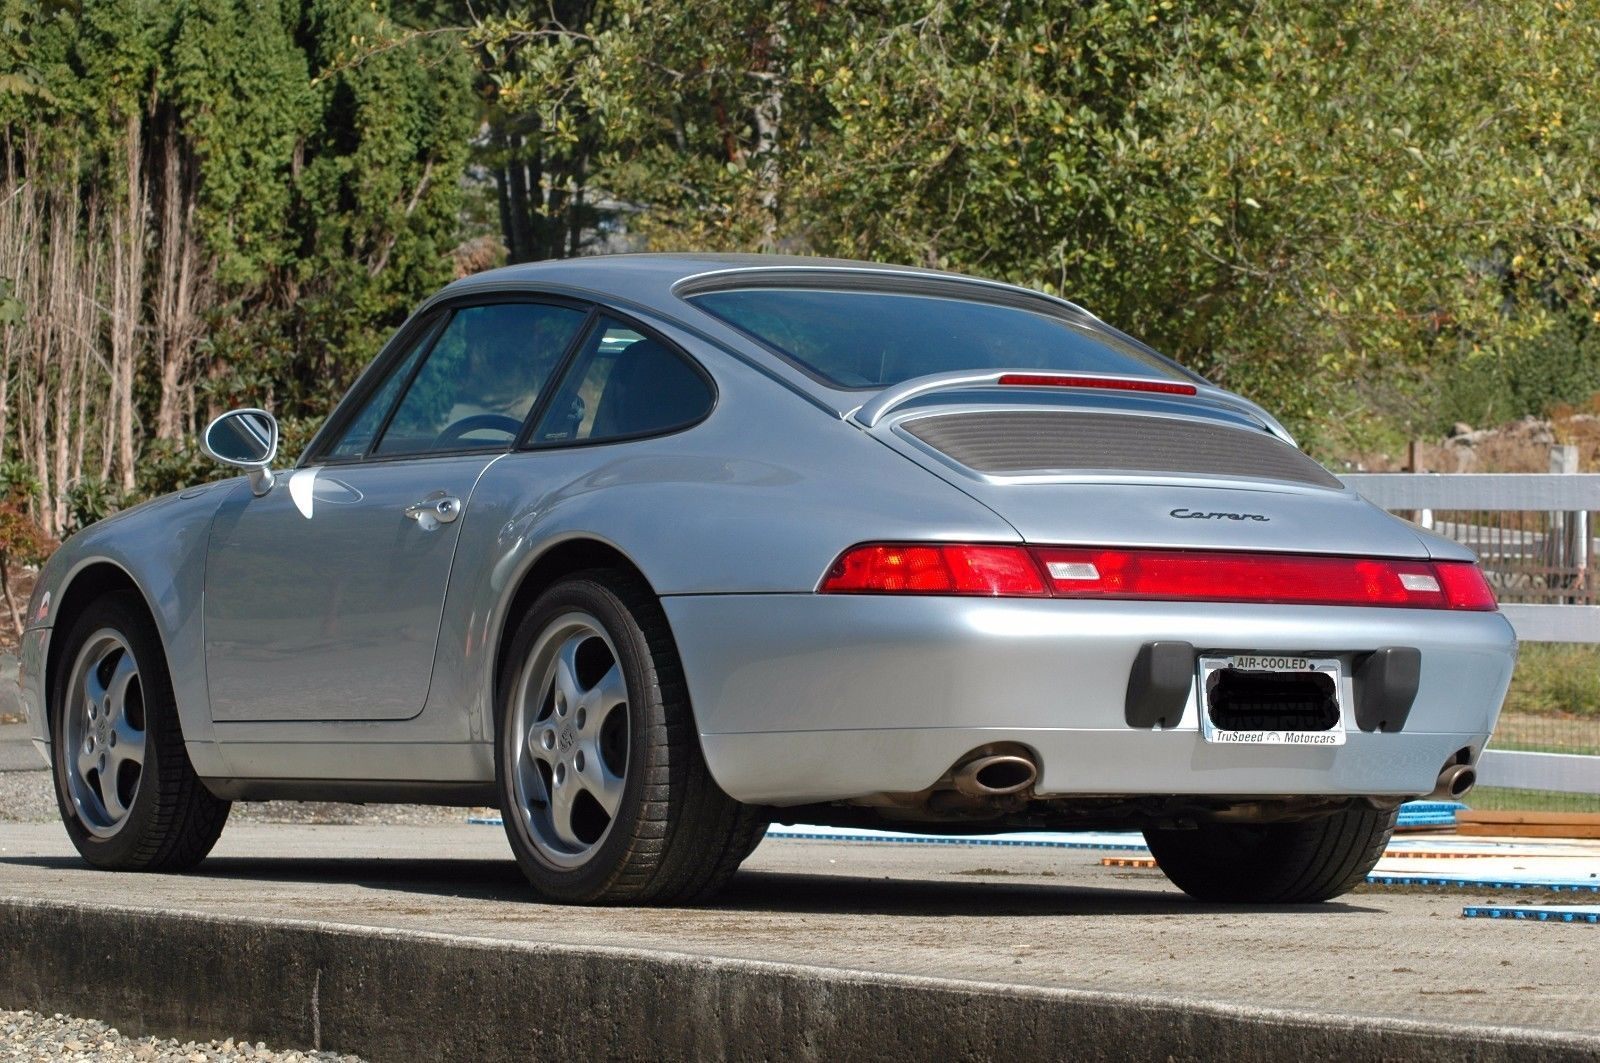 The 25 best find cars for sale ideas on pinterest find cars barn finds and abandoned cars